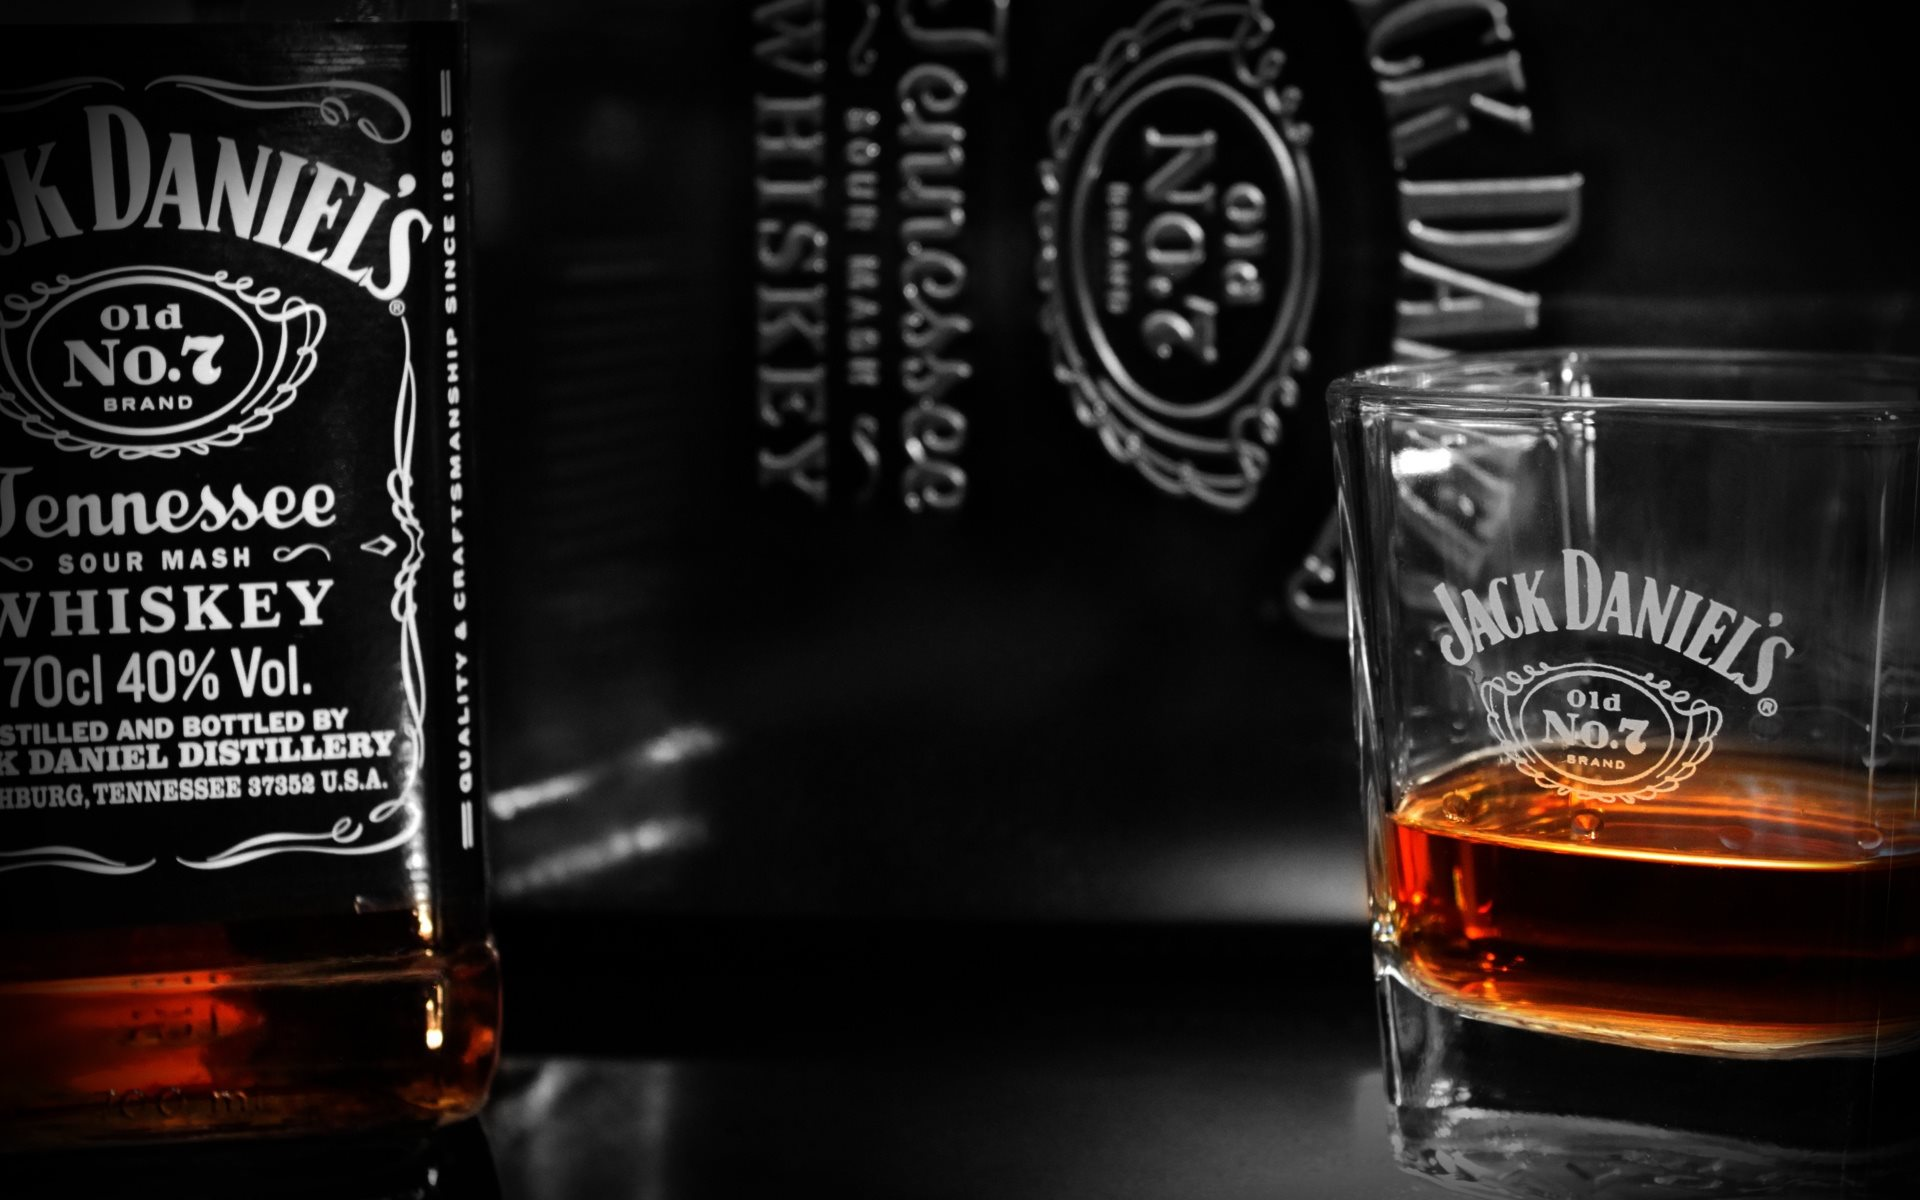 Jack Daniels Old No.7 Whiskey